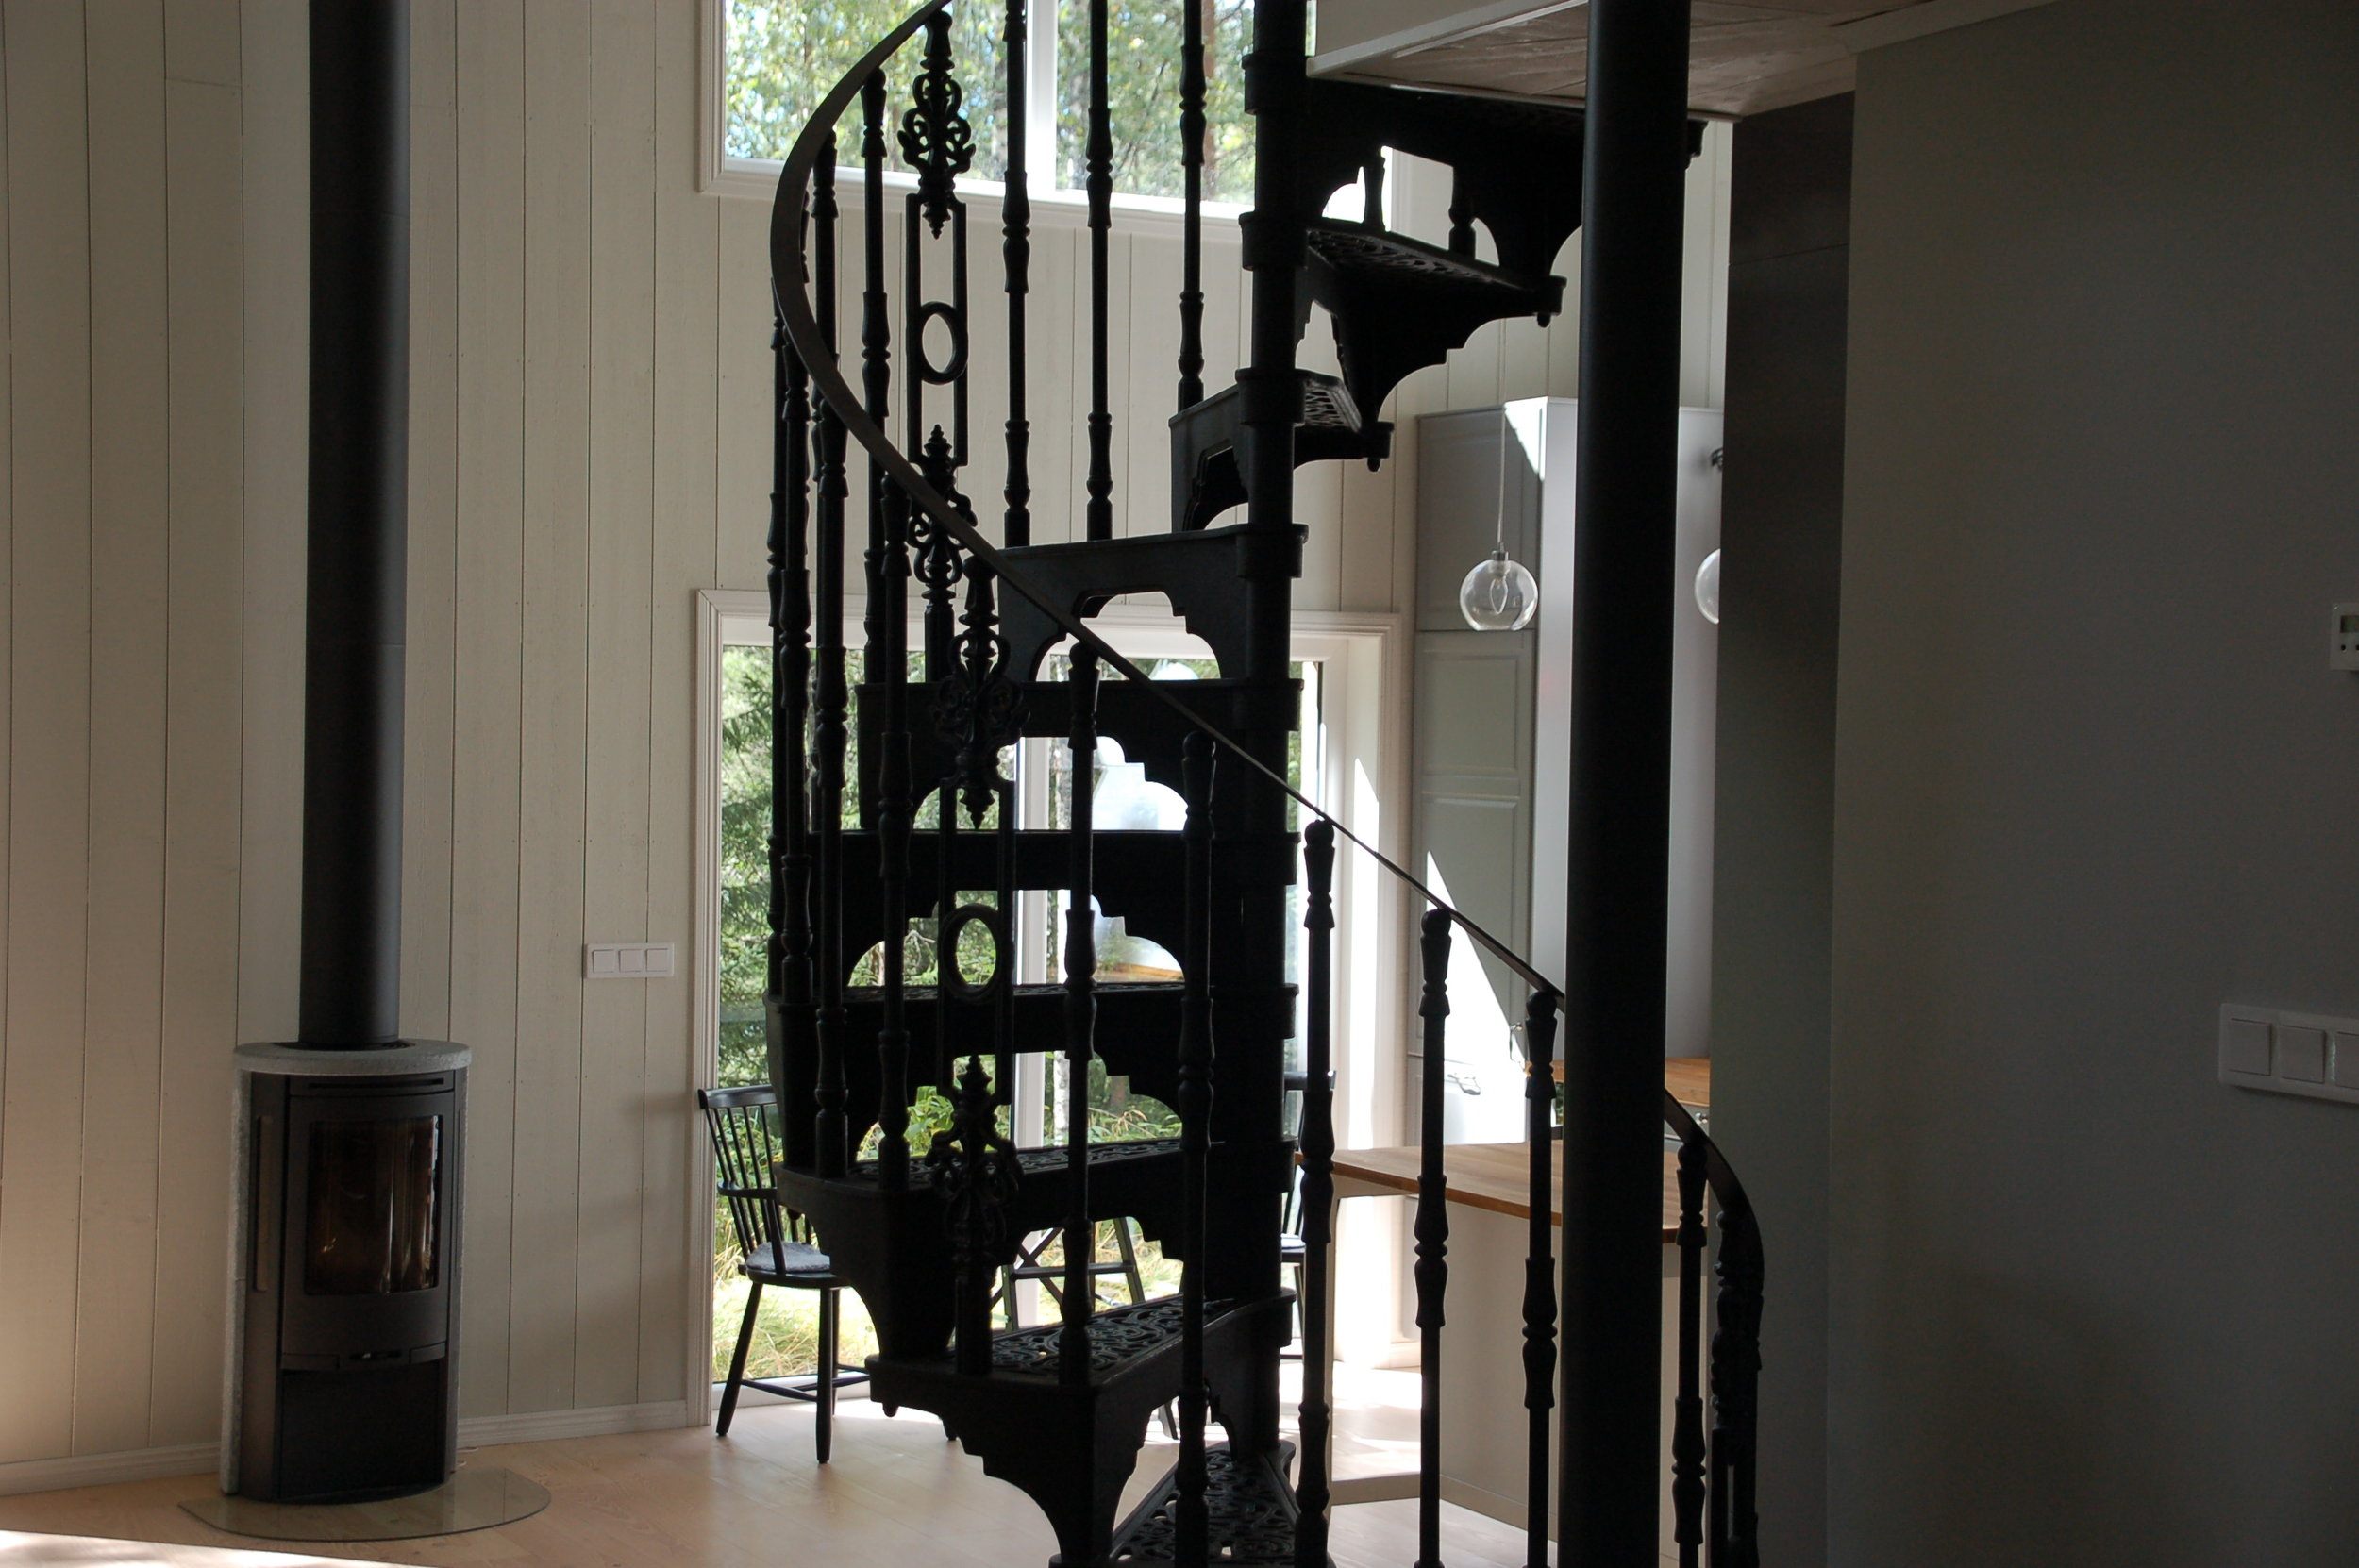 Cast iron staircase in a cabin in the woods.